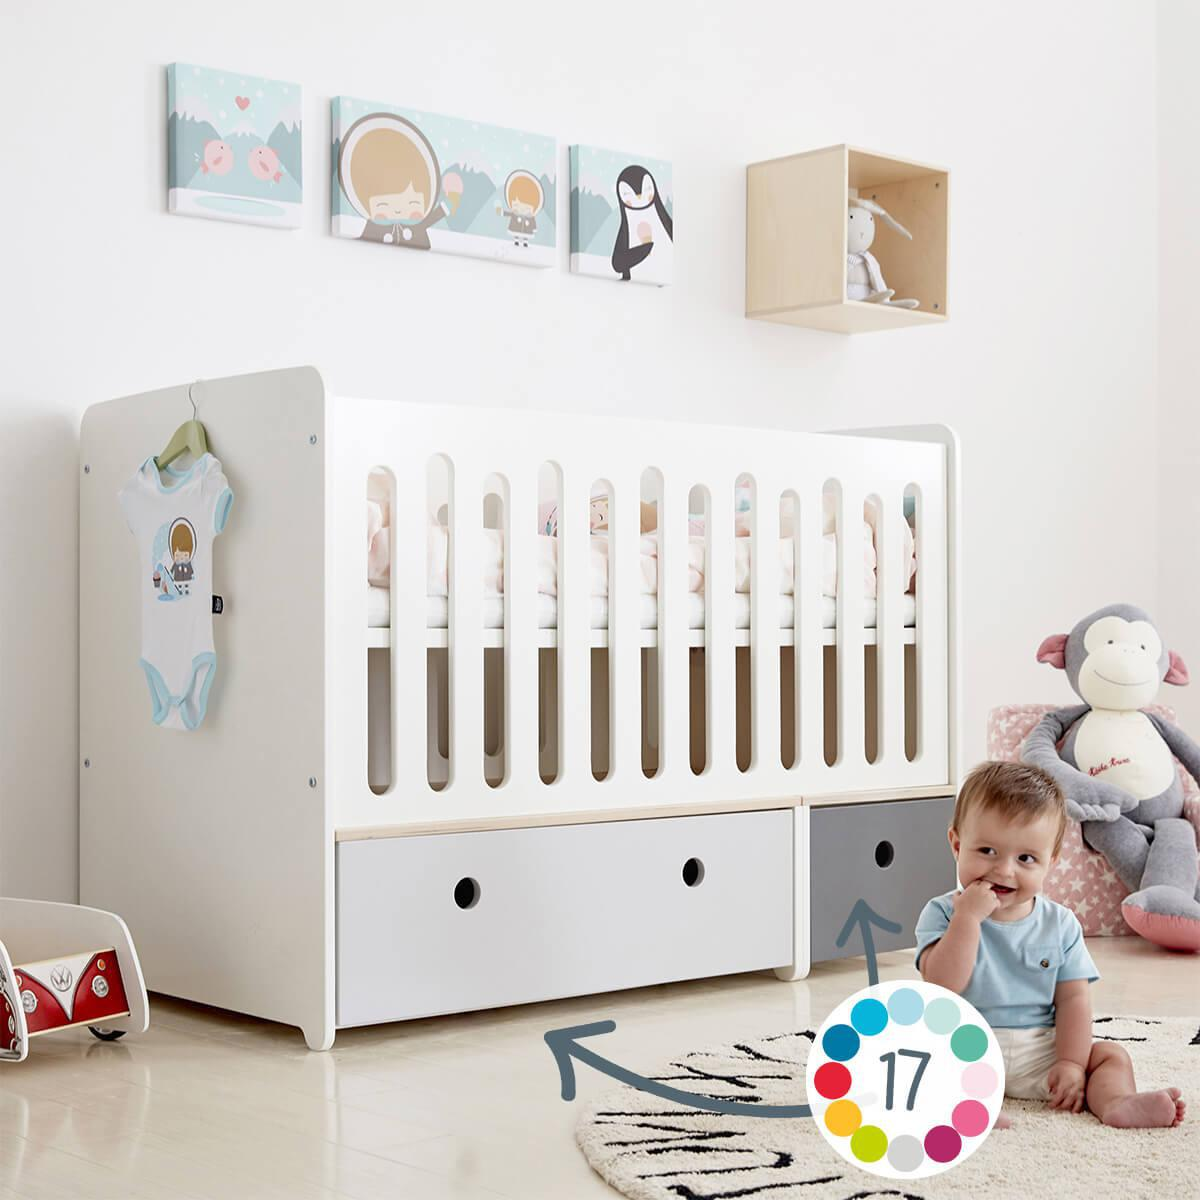 Lit bébé évolutif 70x140cm COLORFLEX Abitare Kids space grey-sea foam